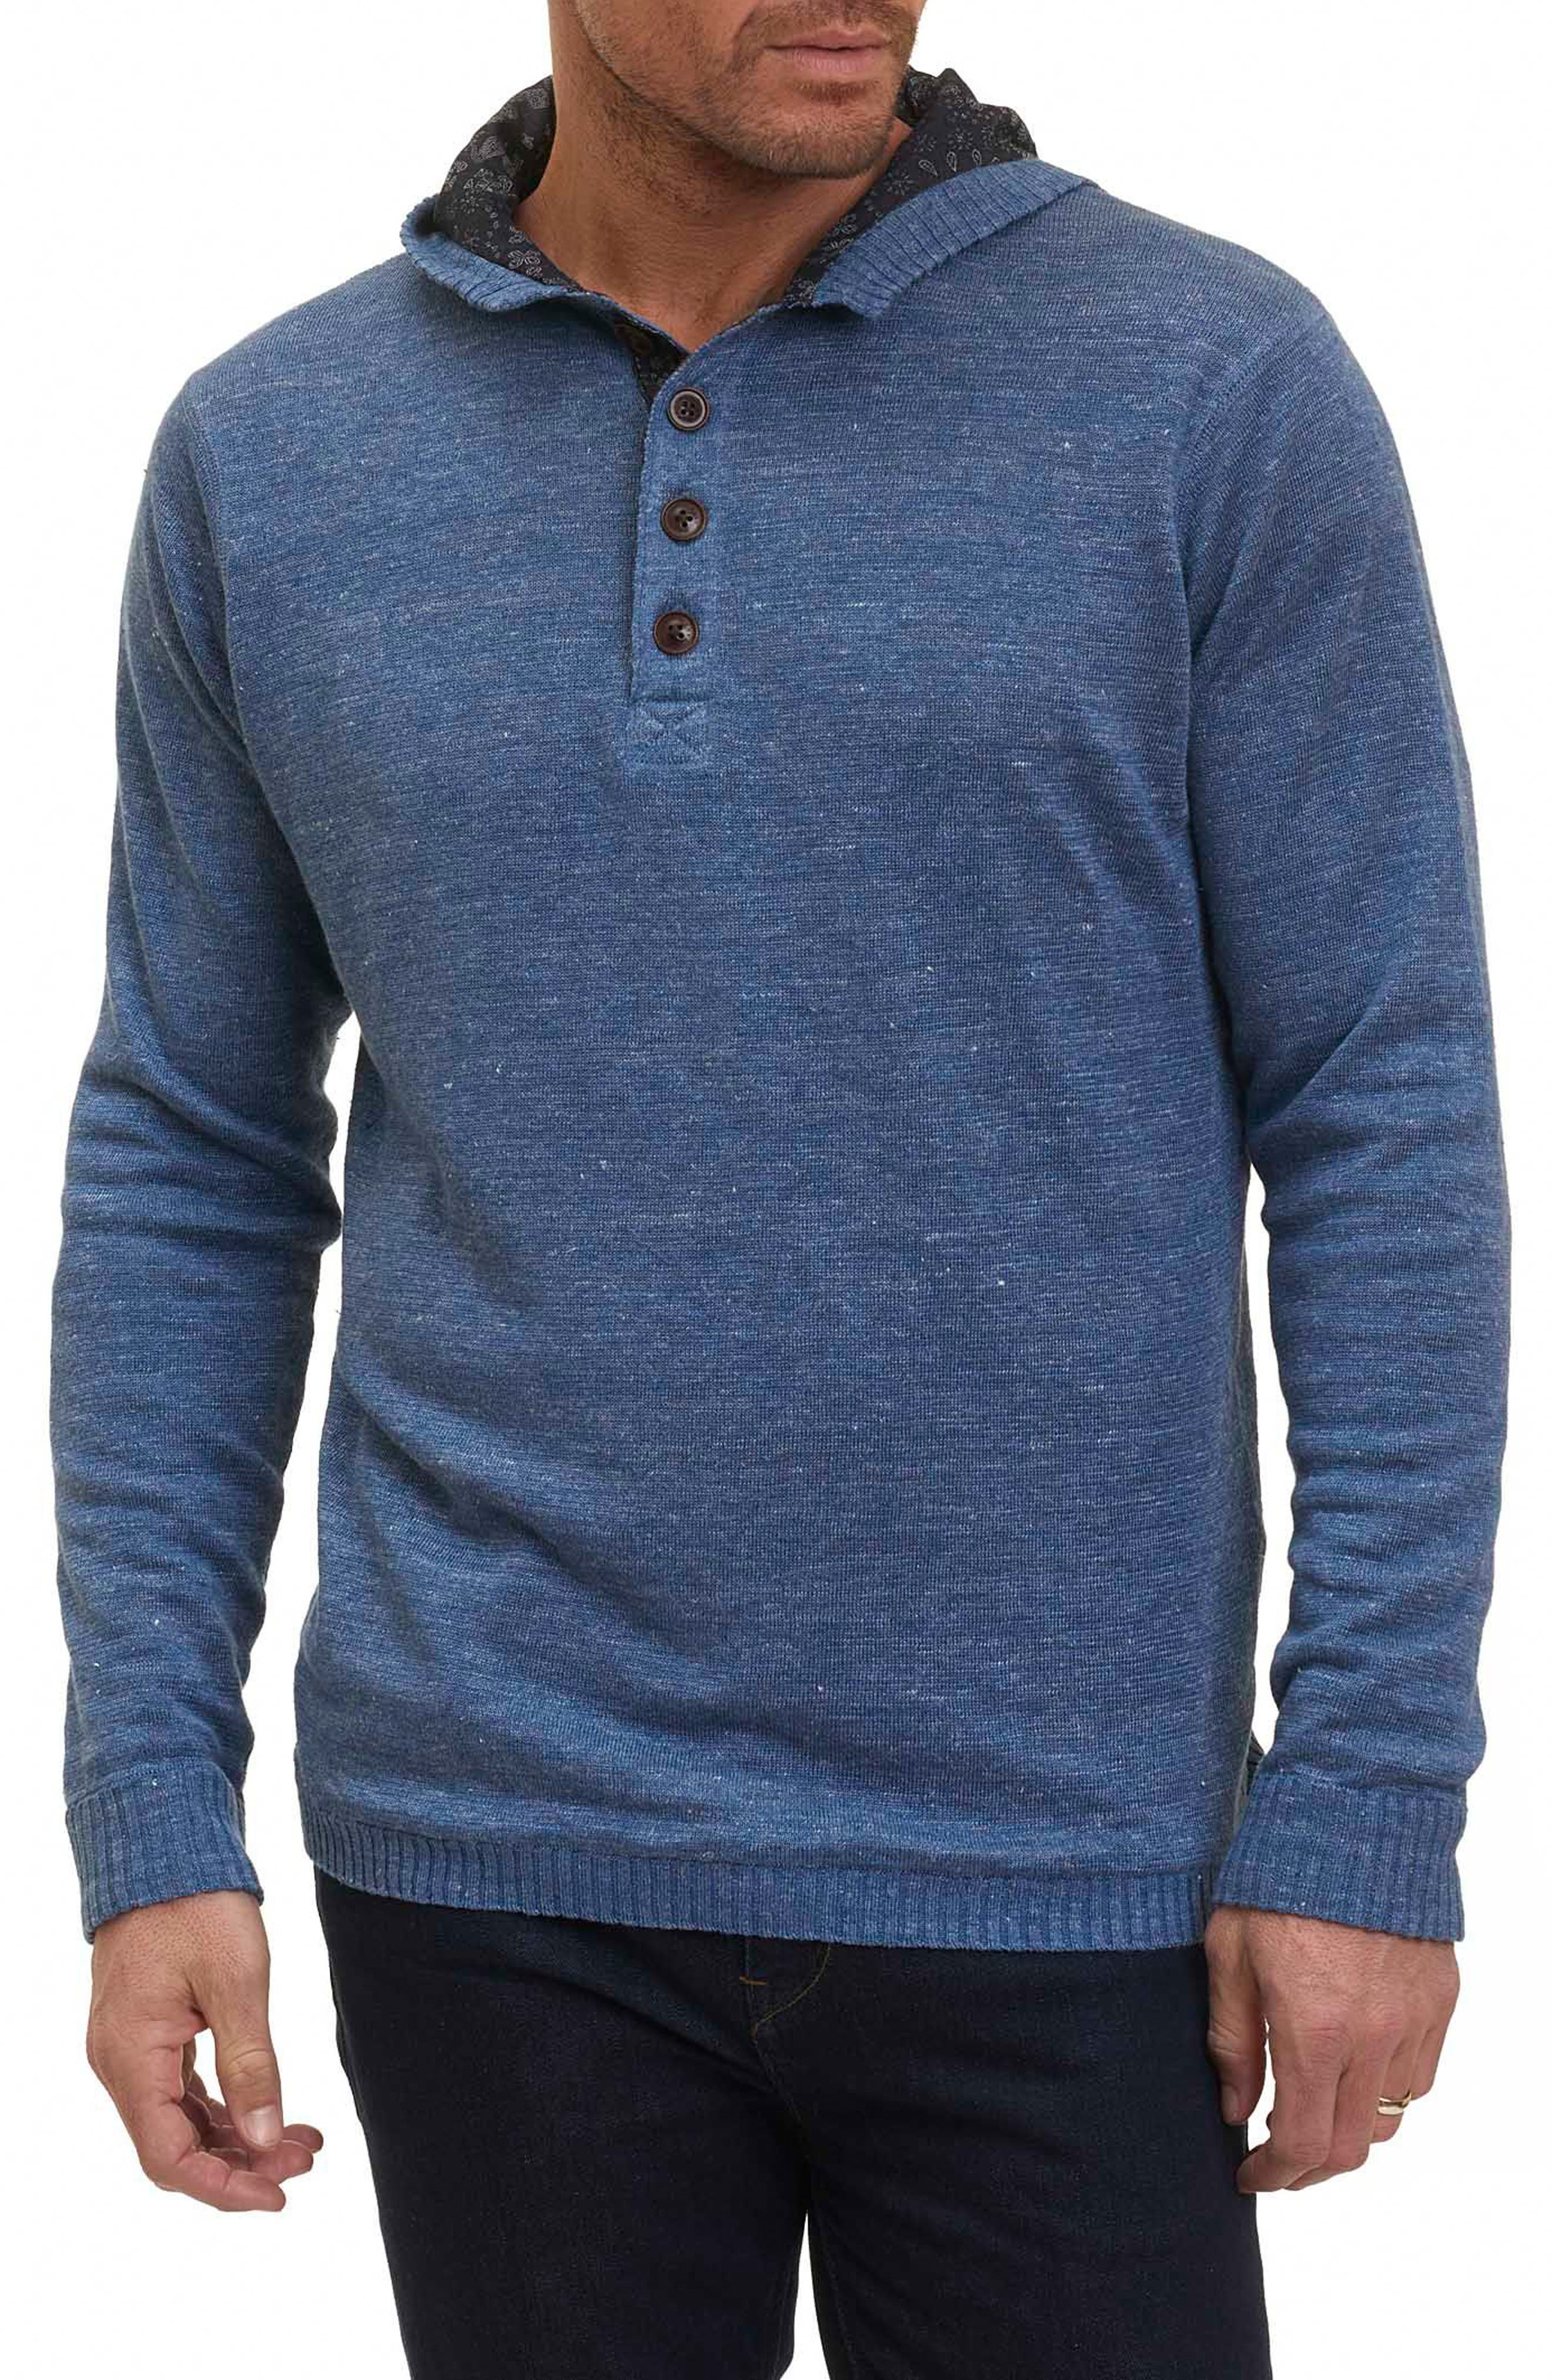 Indus River Sweater Hoodie,                             Main thumbnail 1, color,                             Blue